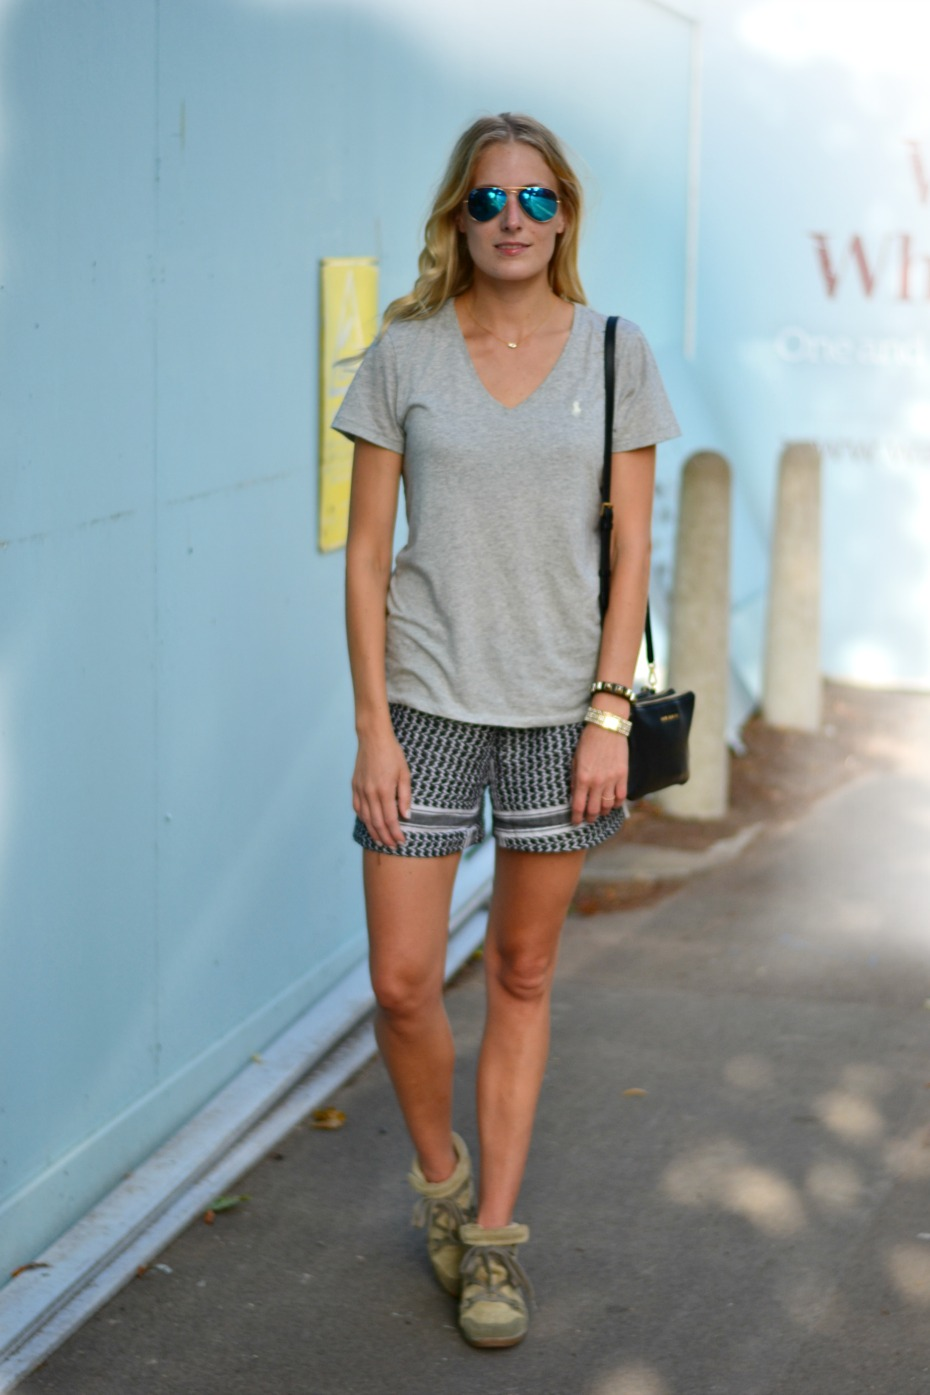 ralph lauren t-shirt_diy partisaner shorts_isabel marant bluebel